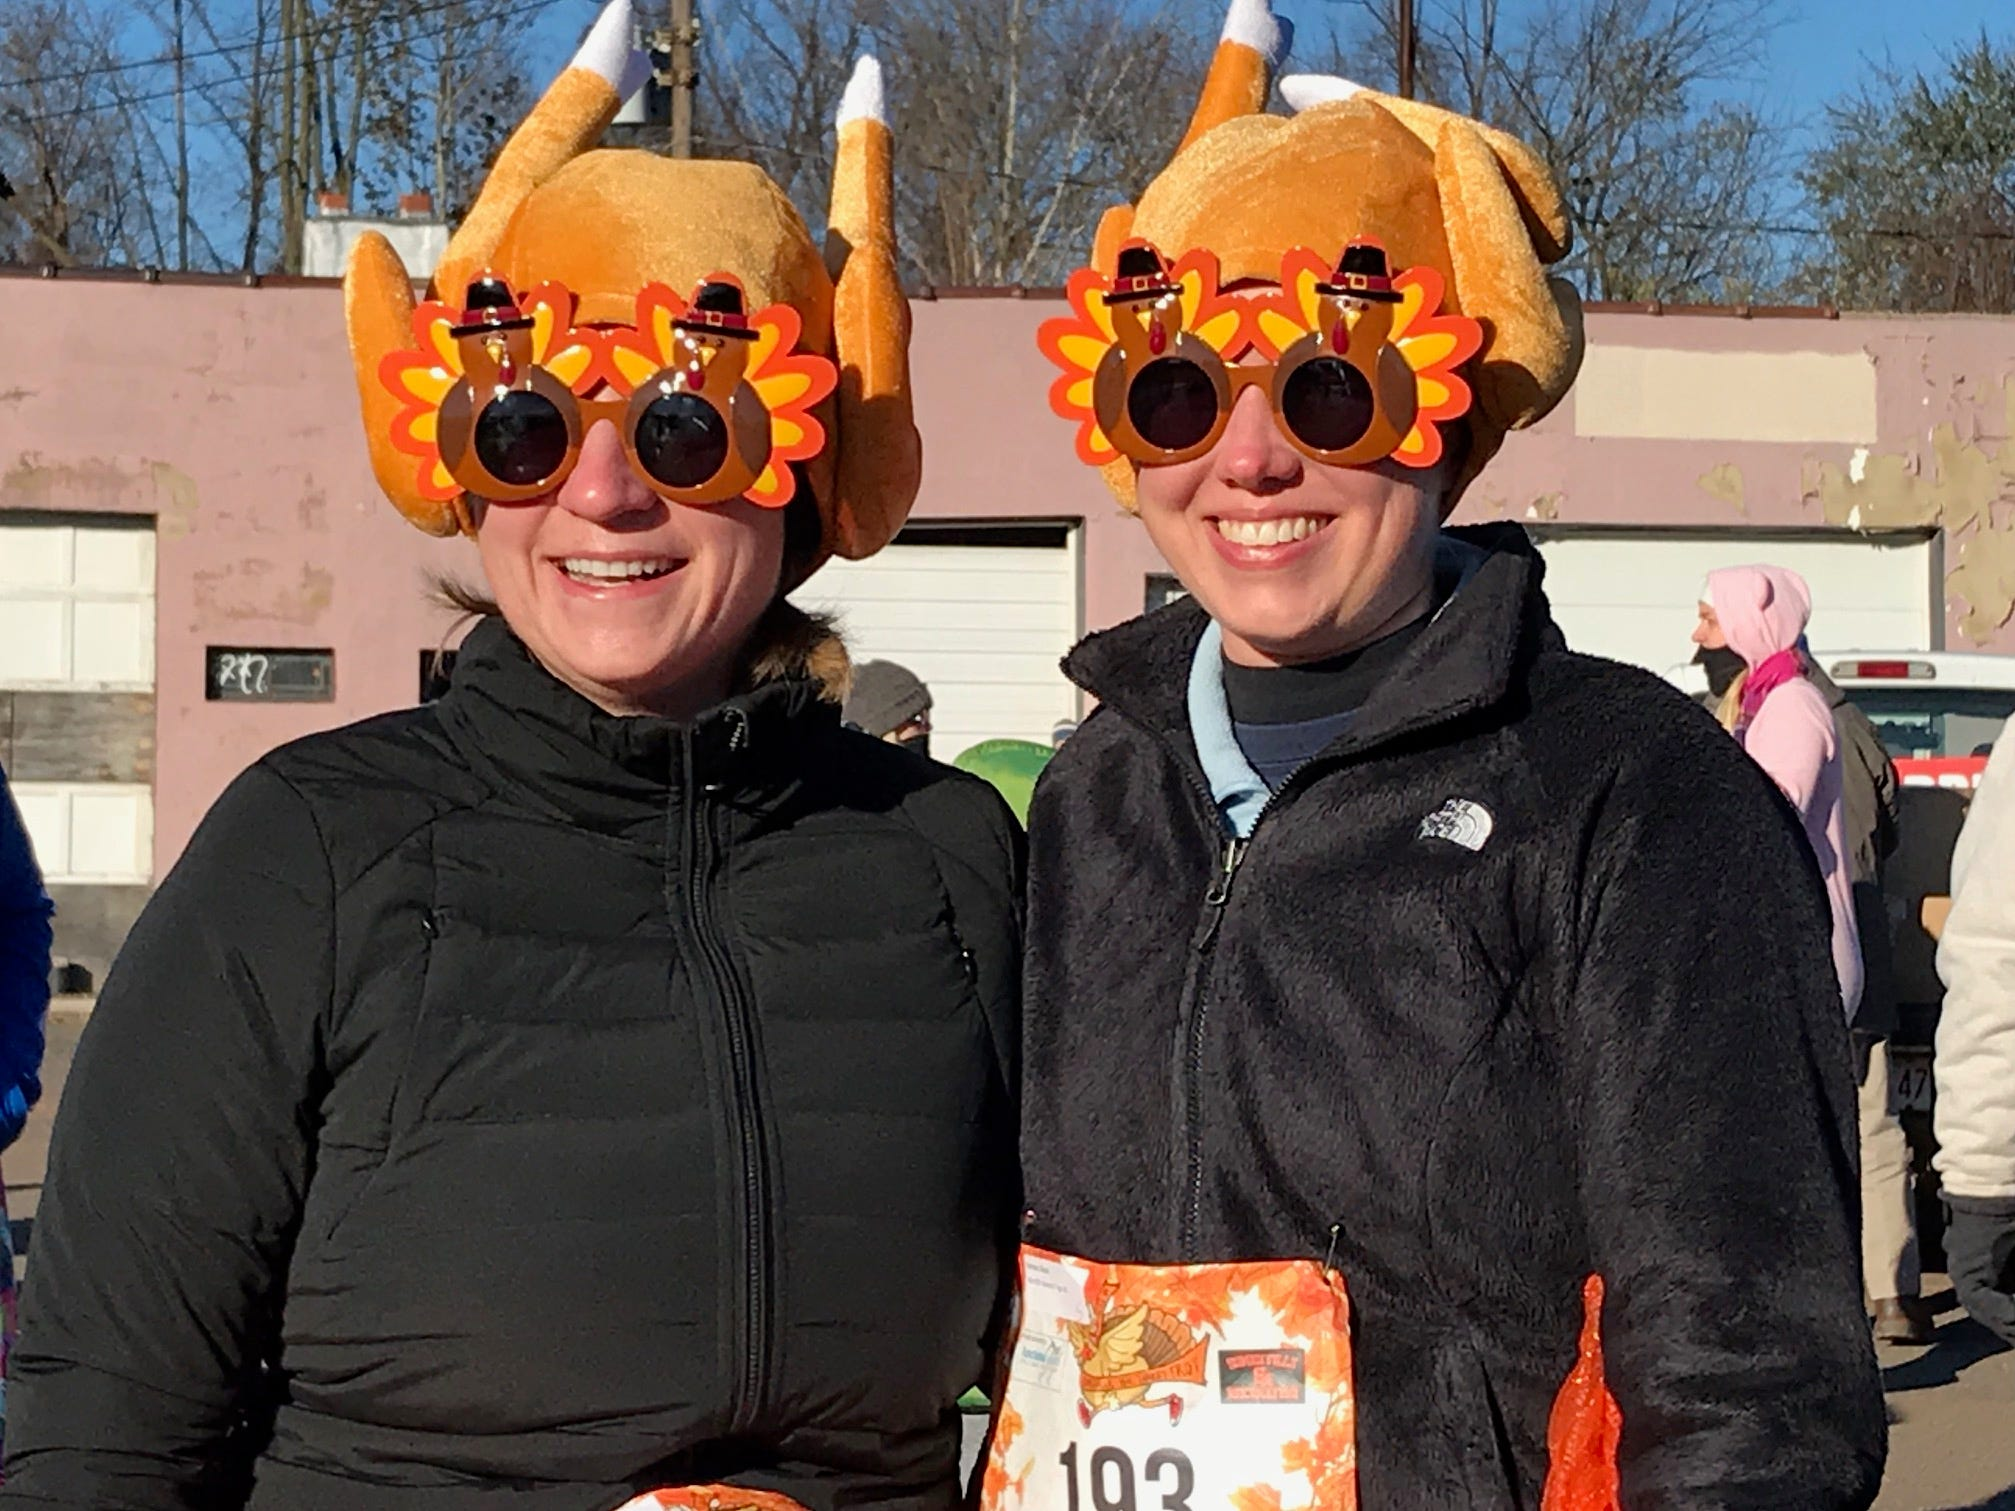 Kelsey Speal and Diana Farmen, both of Basking Ridge, participated in the 3rd annual Somerville Turkey Trot on Thanksgiving Day.